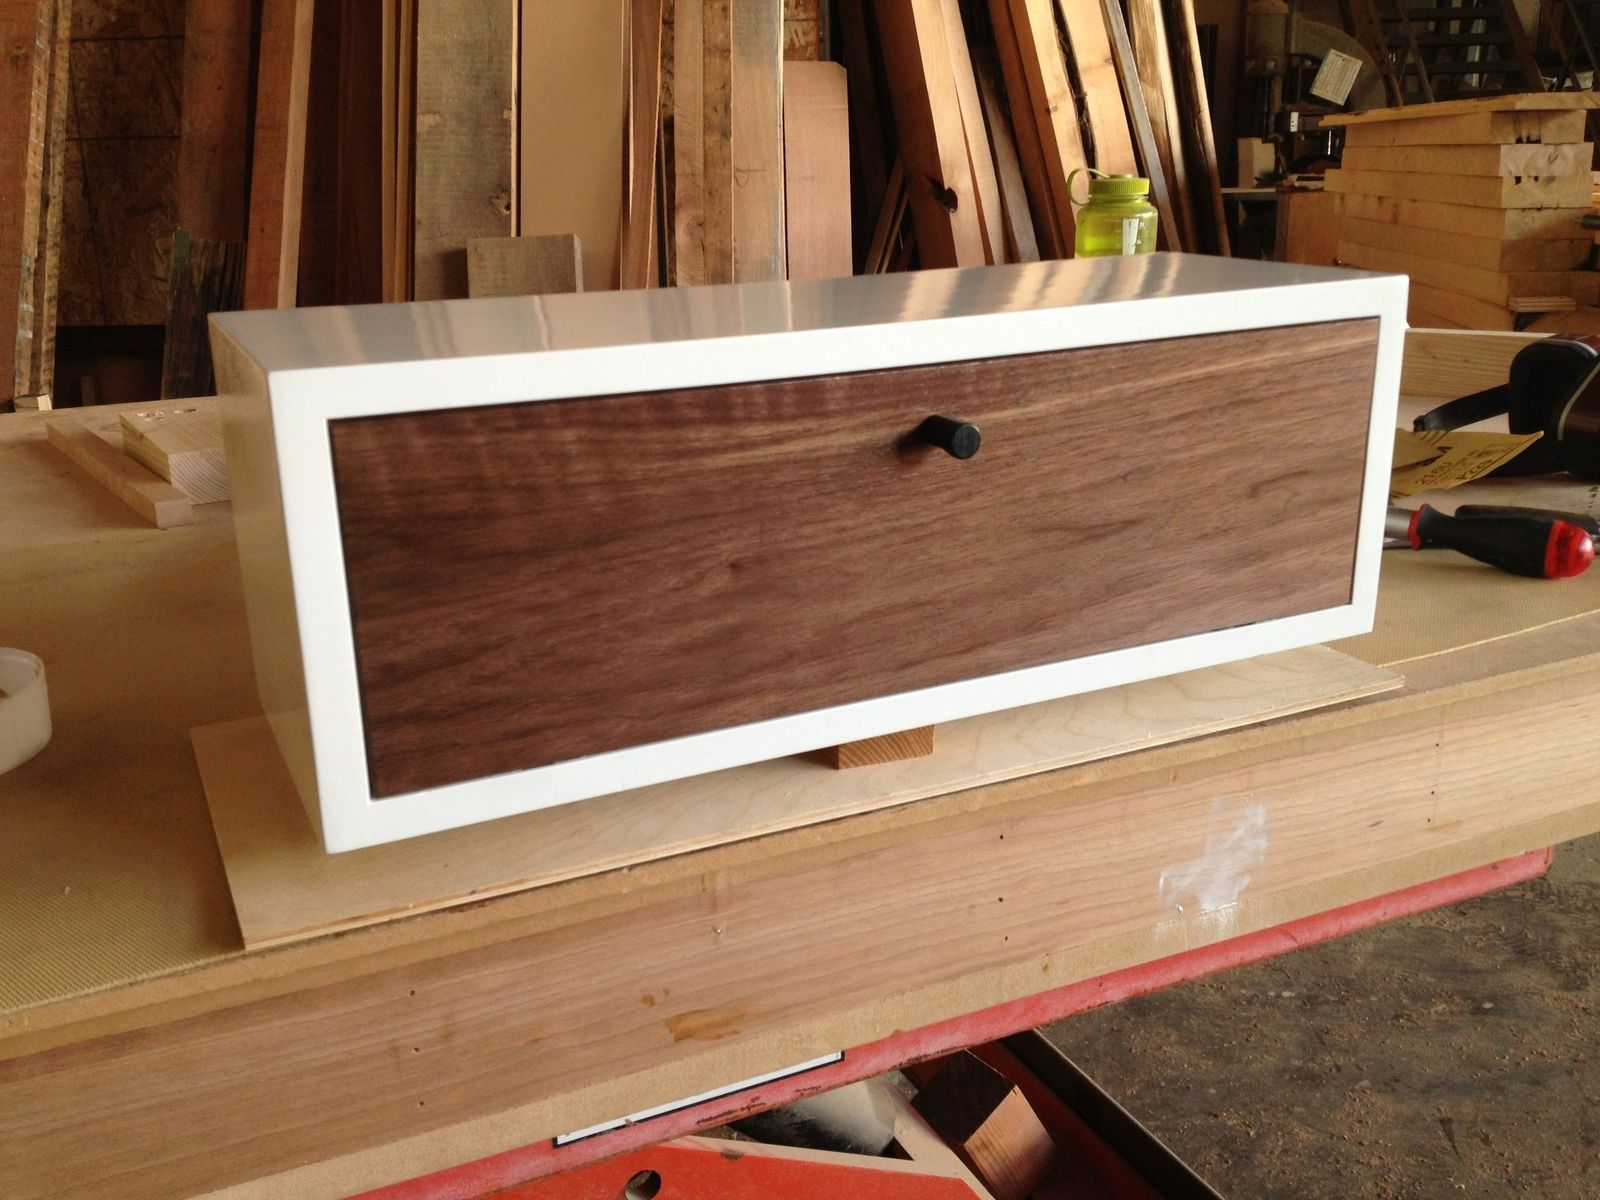 Custom Made Small Floating Bathroom Shelf Cabinet by SAWN Custom